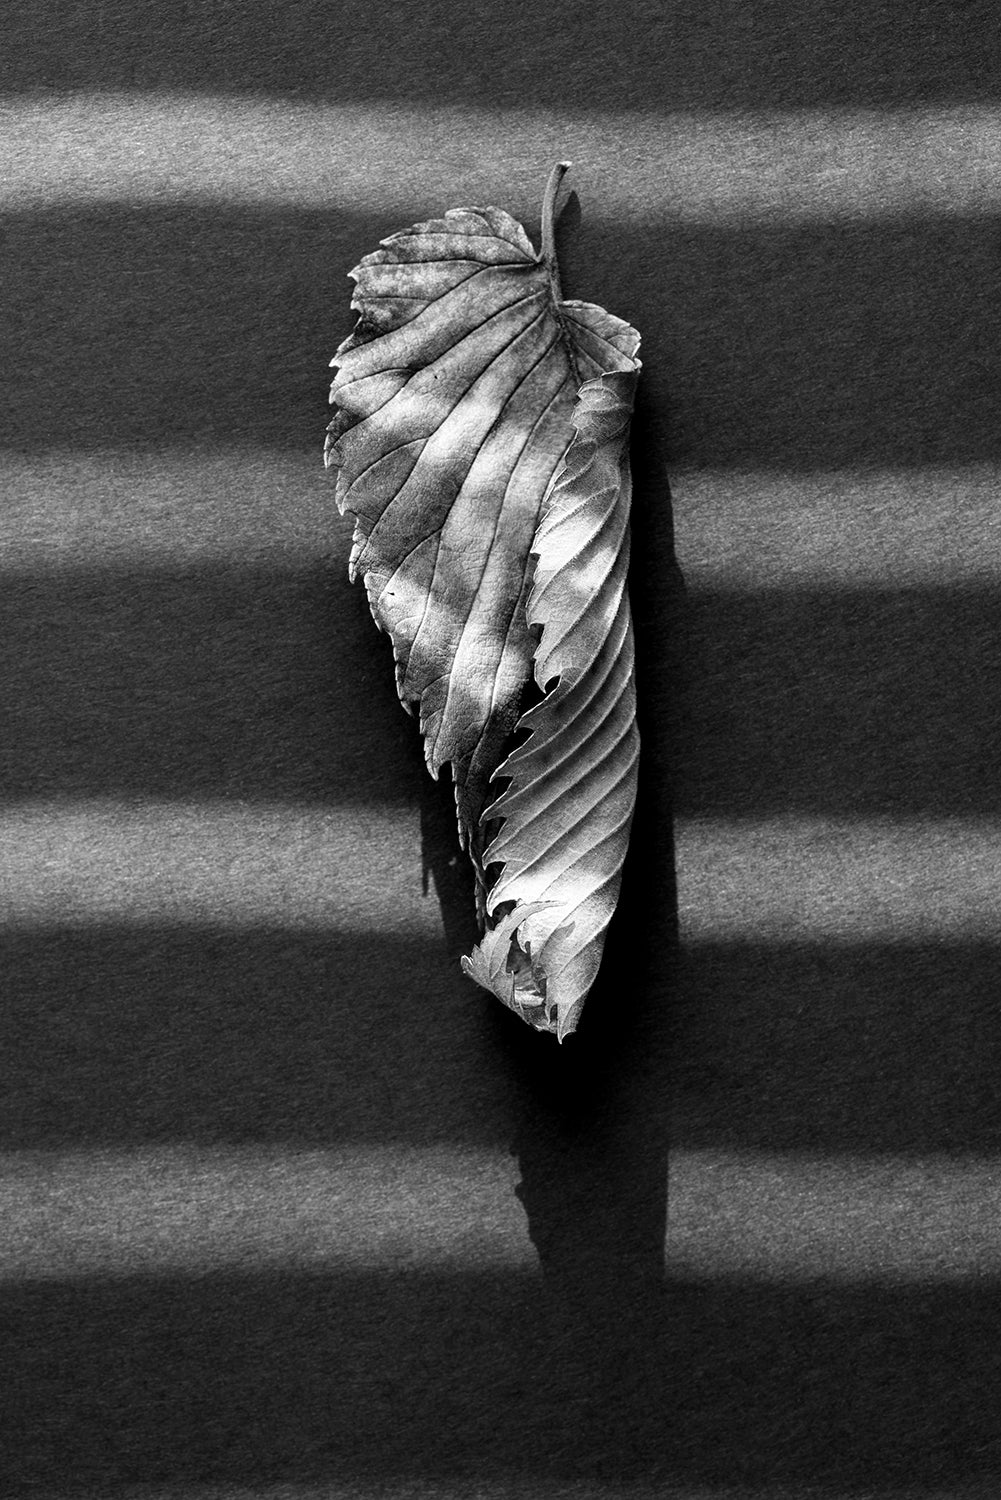 Curled Leaf in Sunbeams - Black and White Photograph by Keith Dotson. Buy a print.